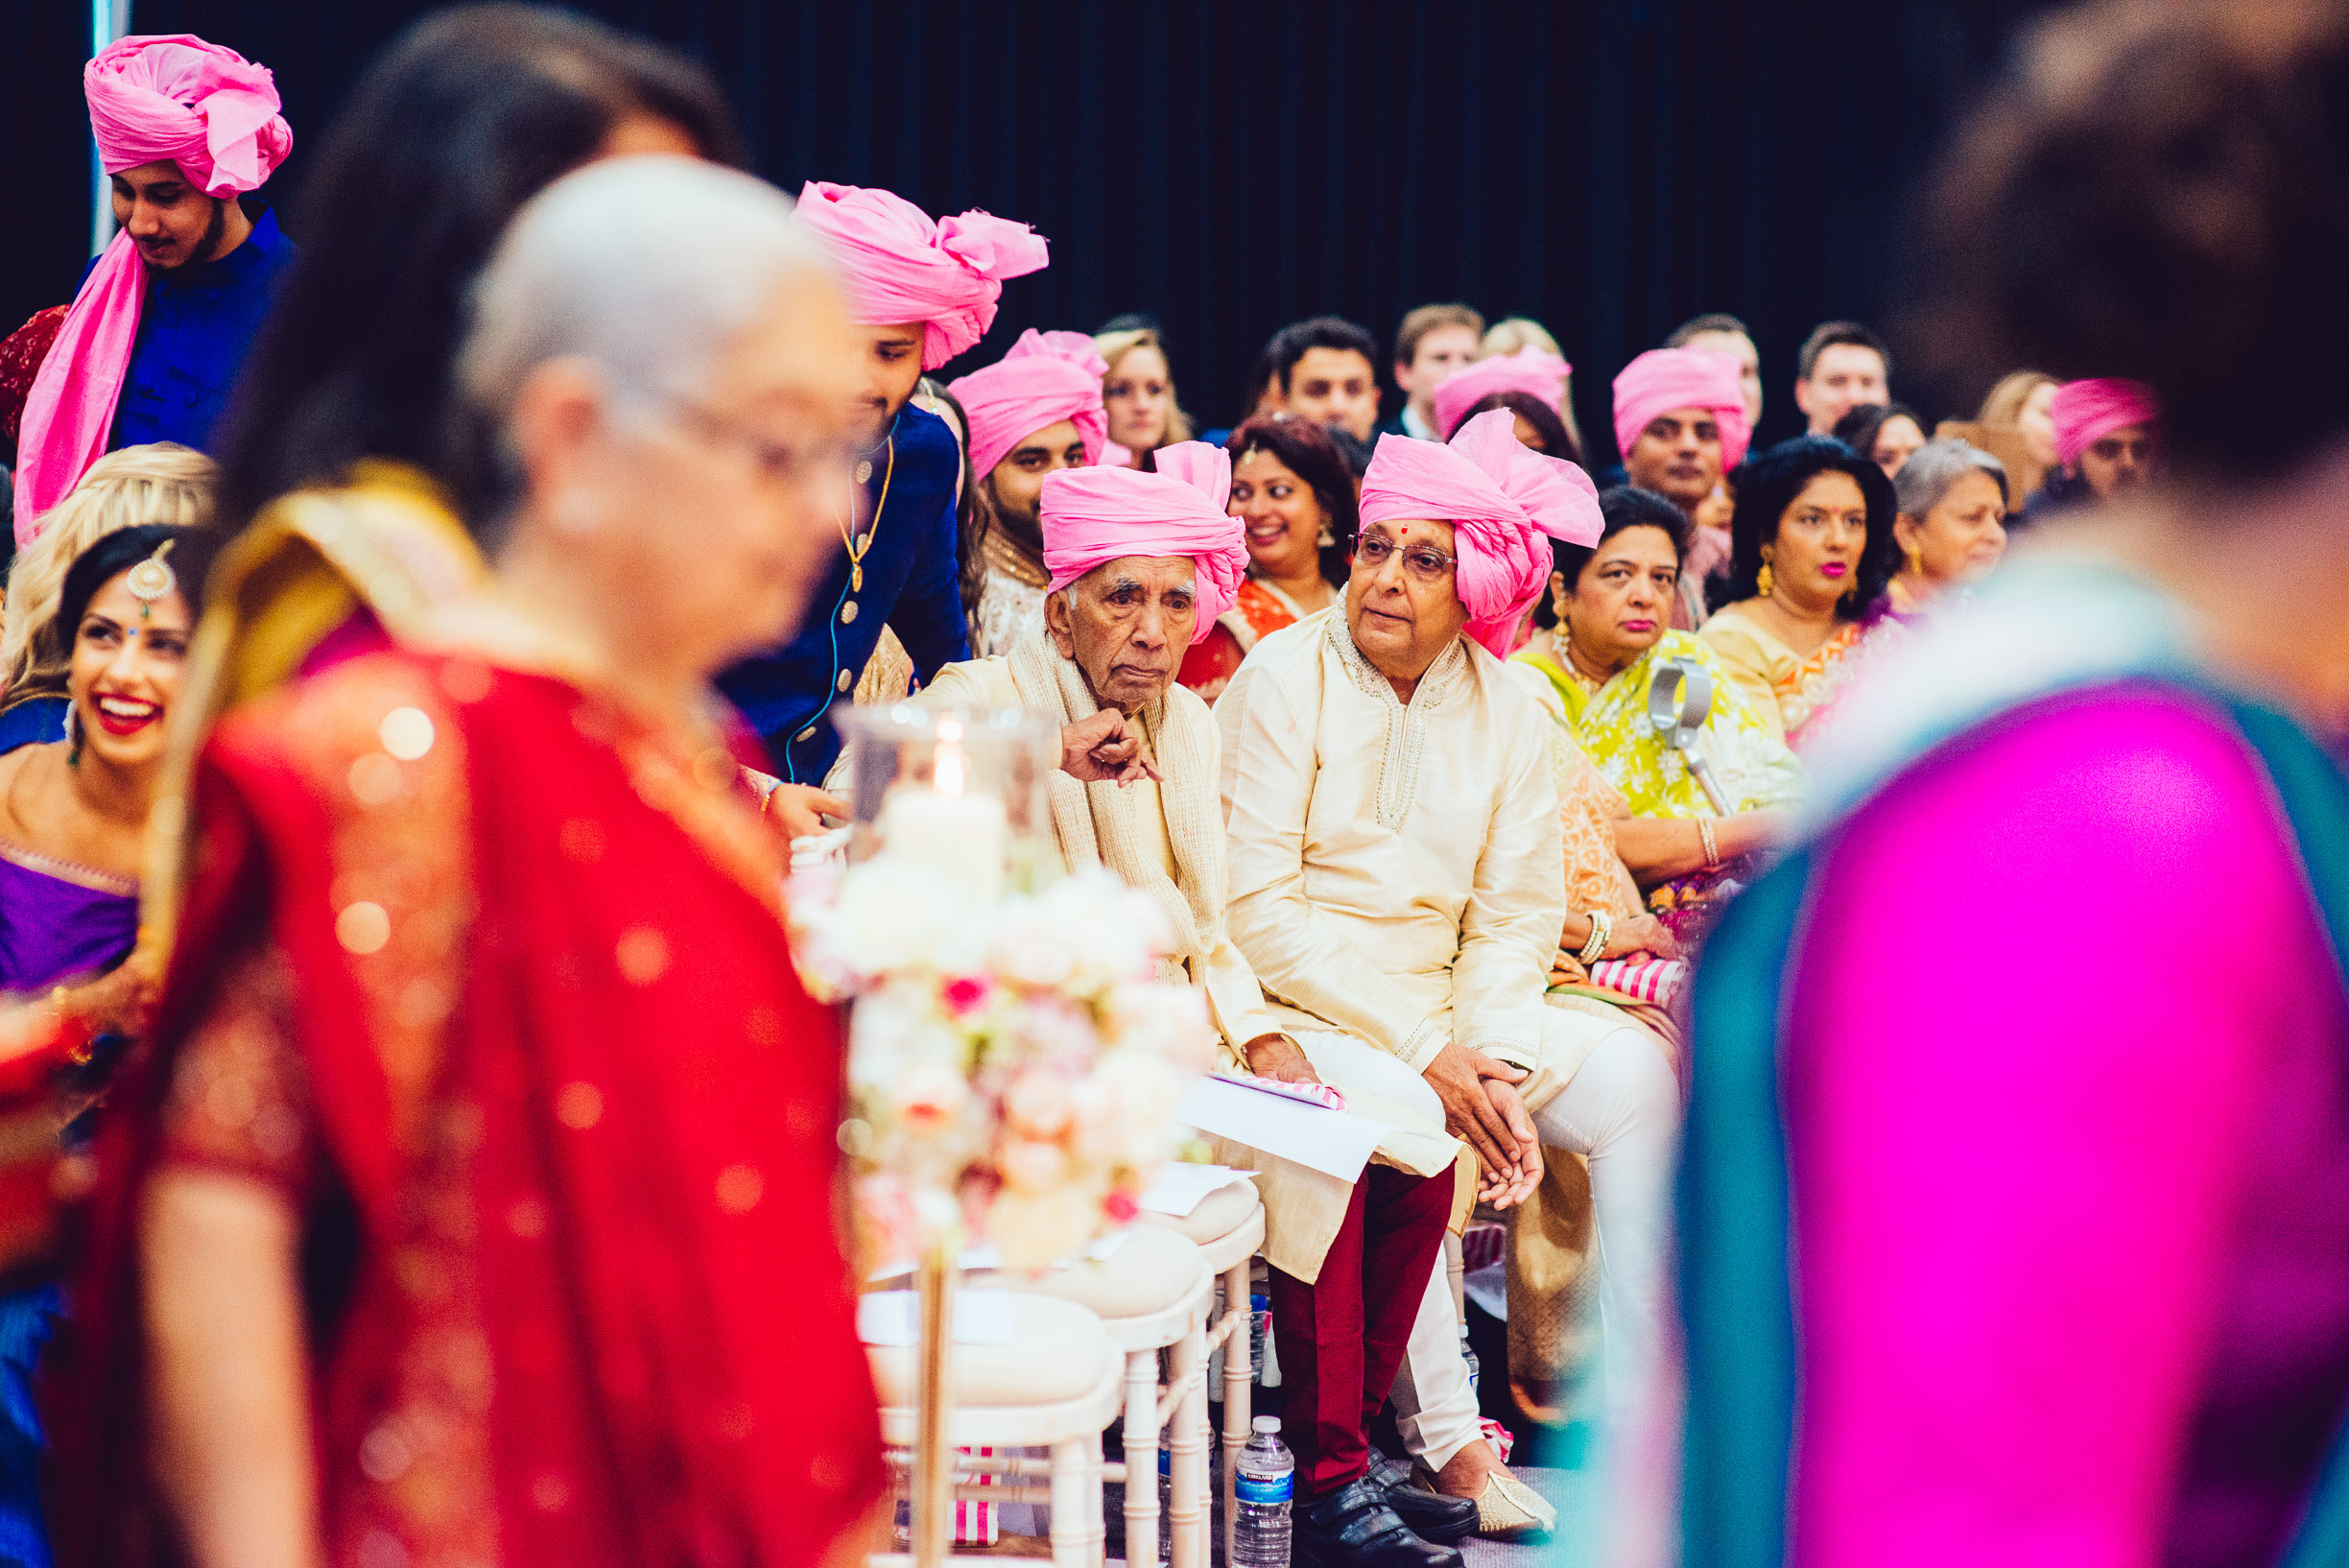 amit&ceema_eden_moments_wedding_photography-5